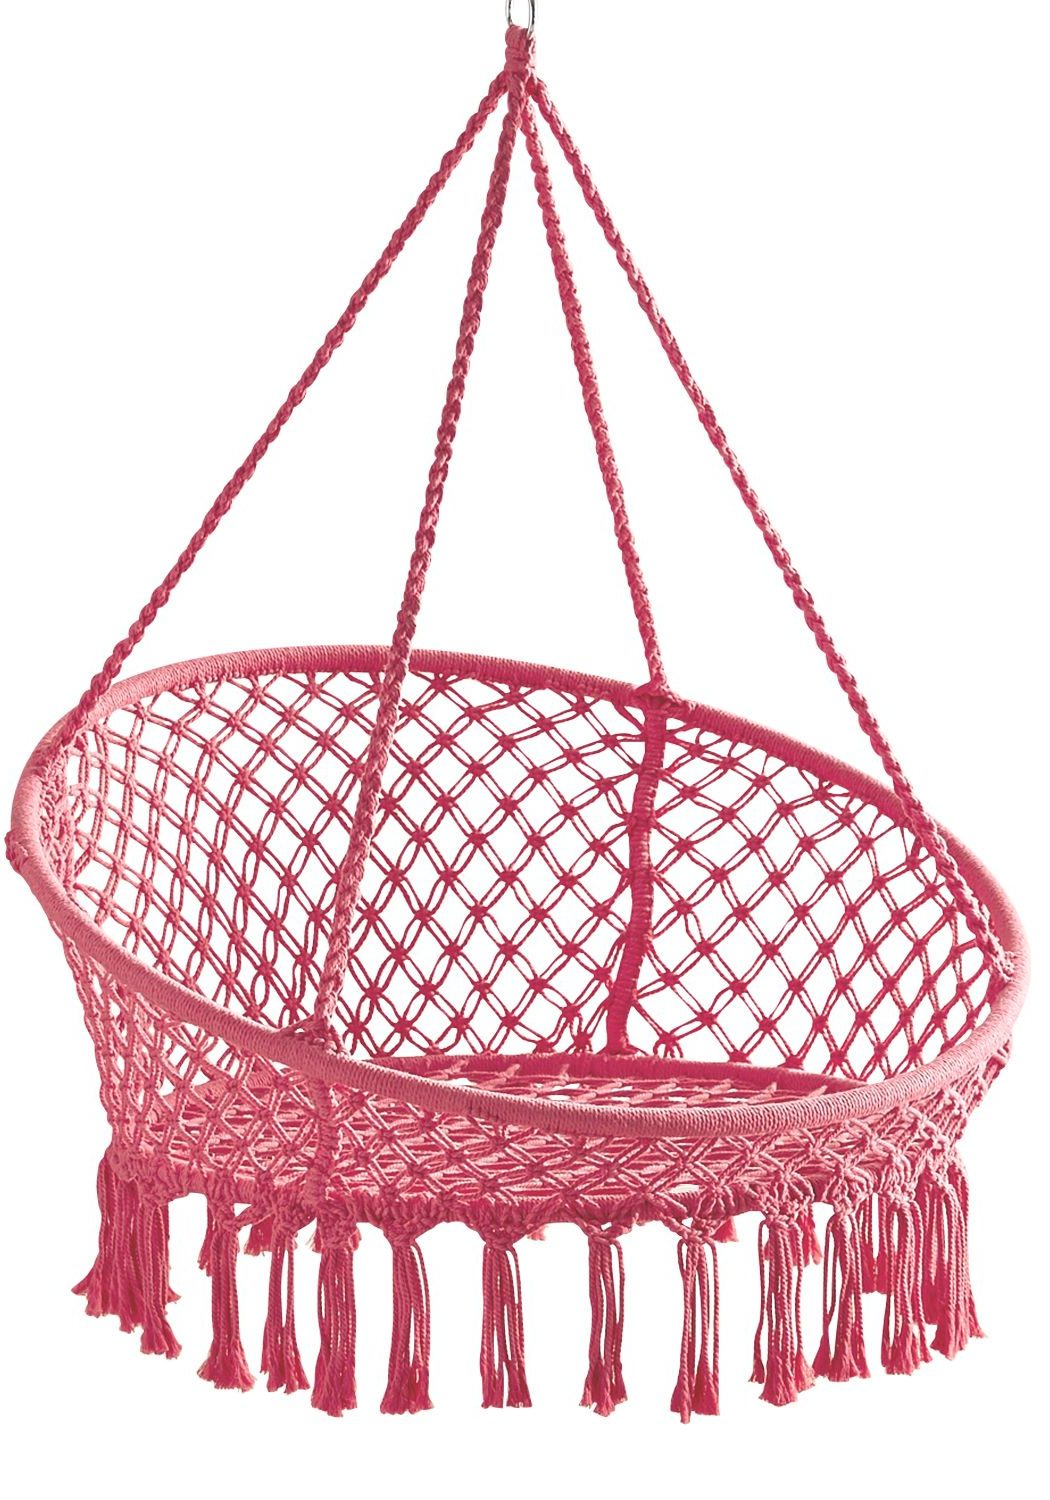 Pink Macrame Hanging Hammock Chair Review Pier1 Hanging Chairs